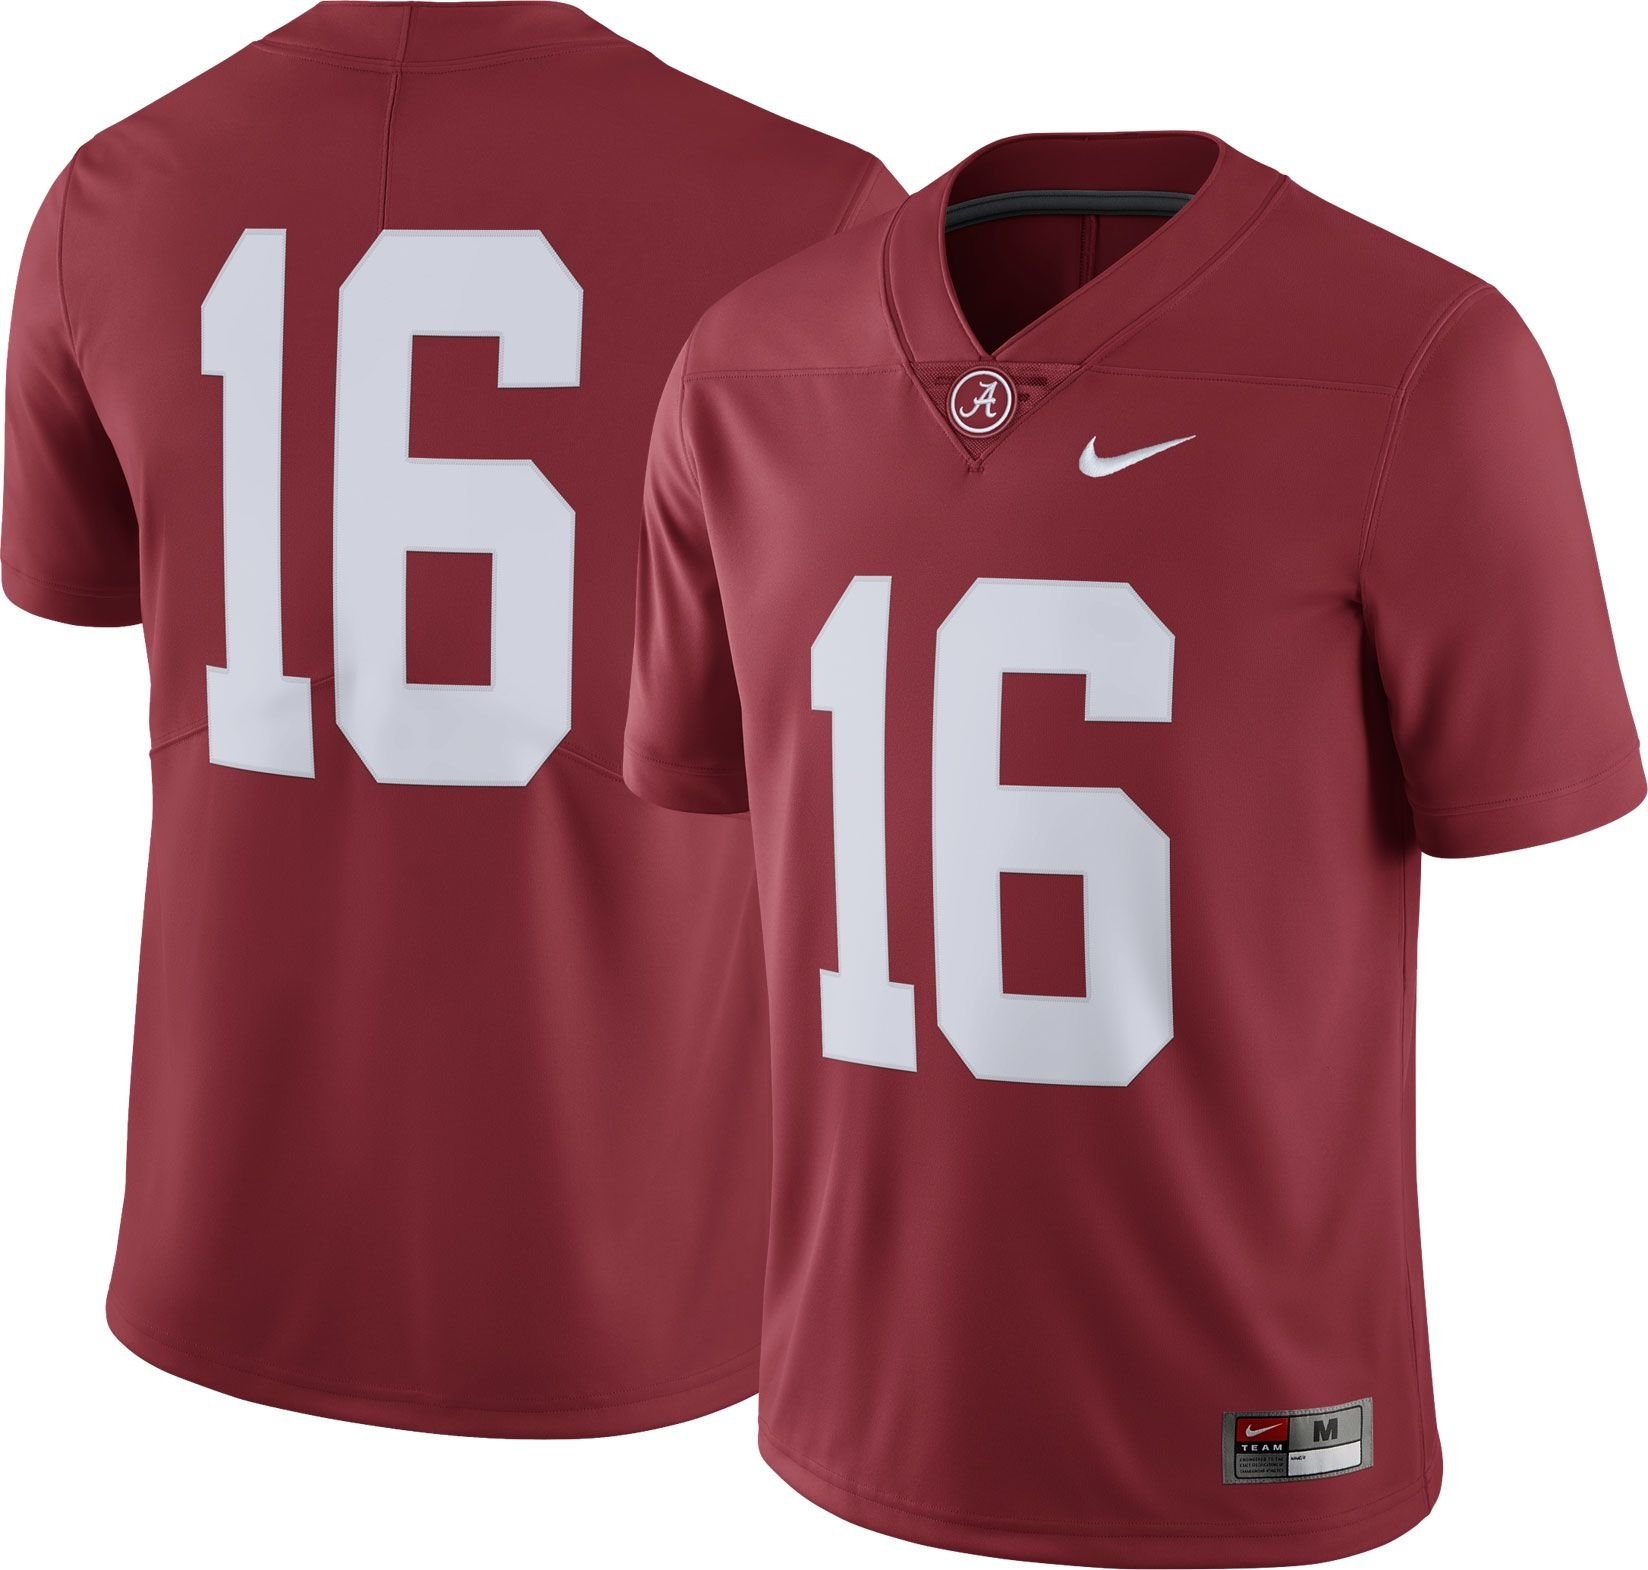 Nike Men's Alabama Crimson Tide #16 Crimson Limited Football Jersey (M)